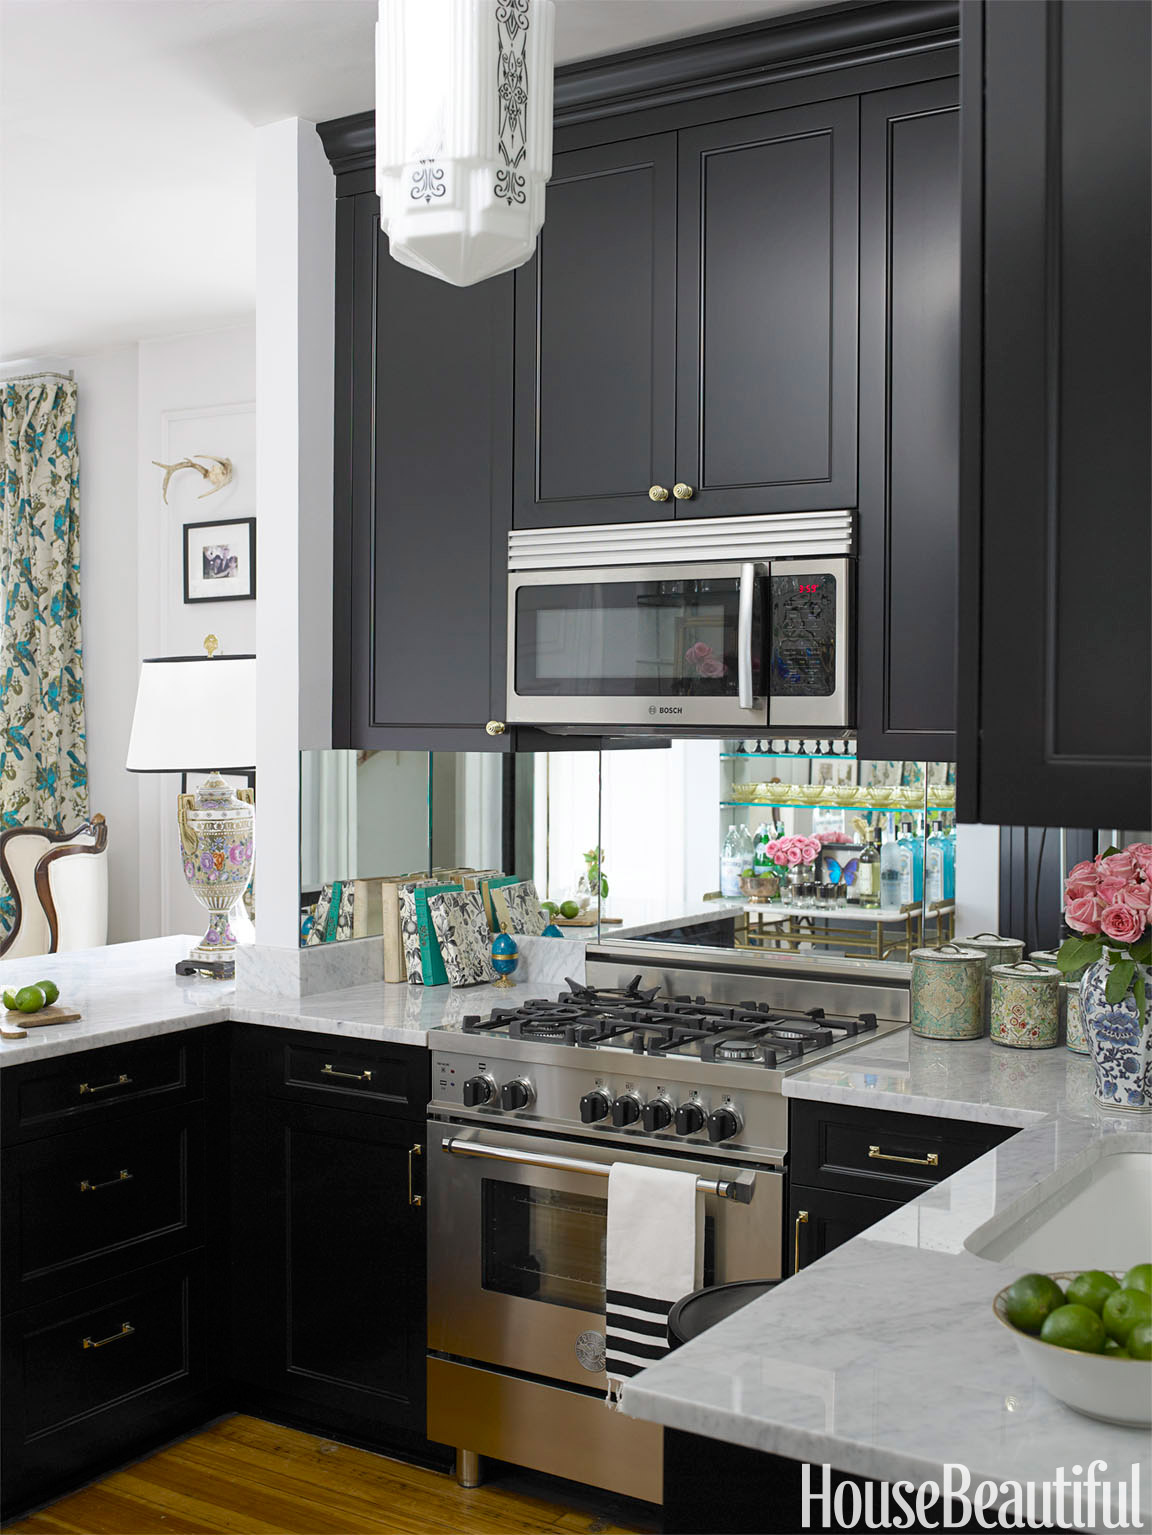 Small Kitchen Design Ideas - Remodeling Ideas for Small ... on Tiny Kitchen Remodel Ideas  id=33537